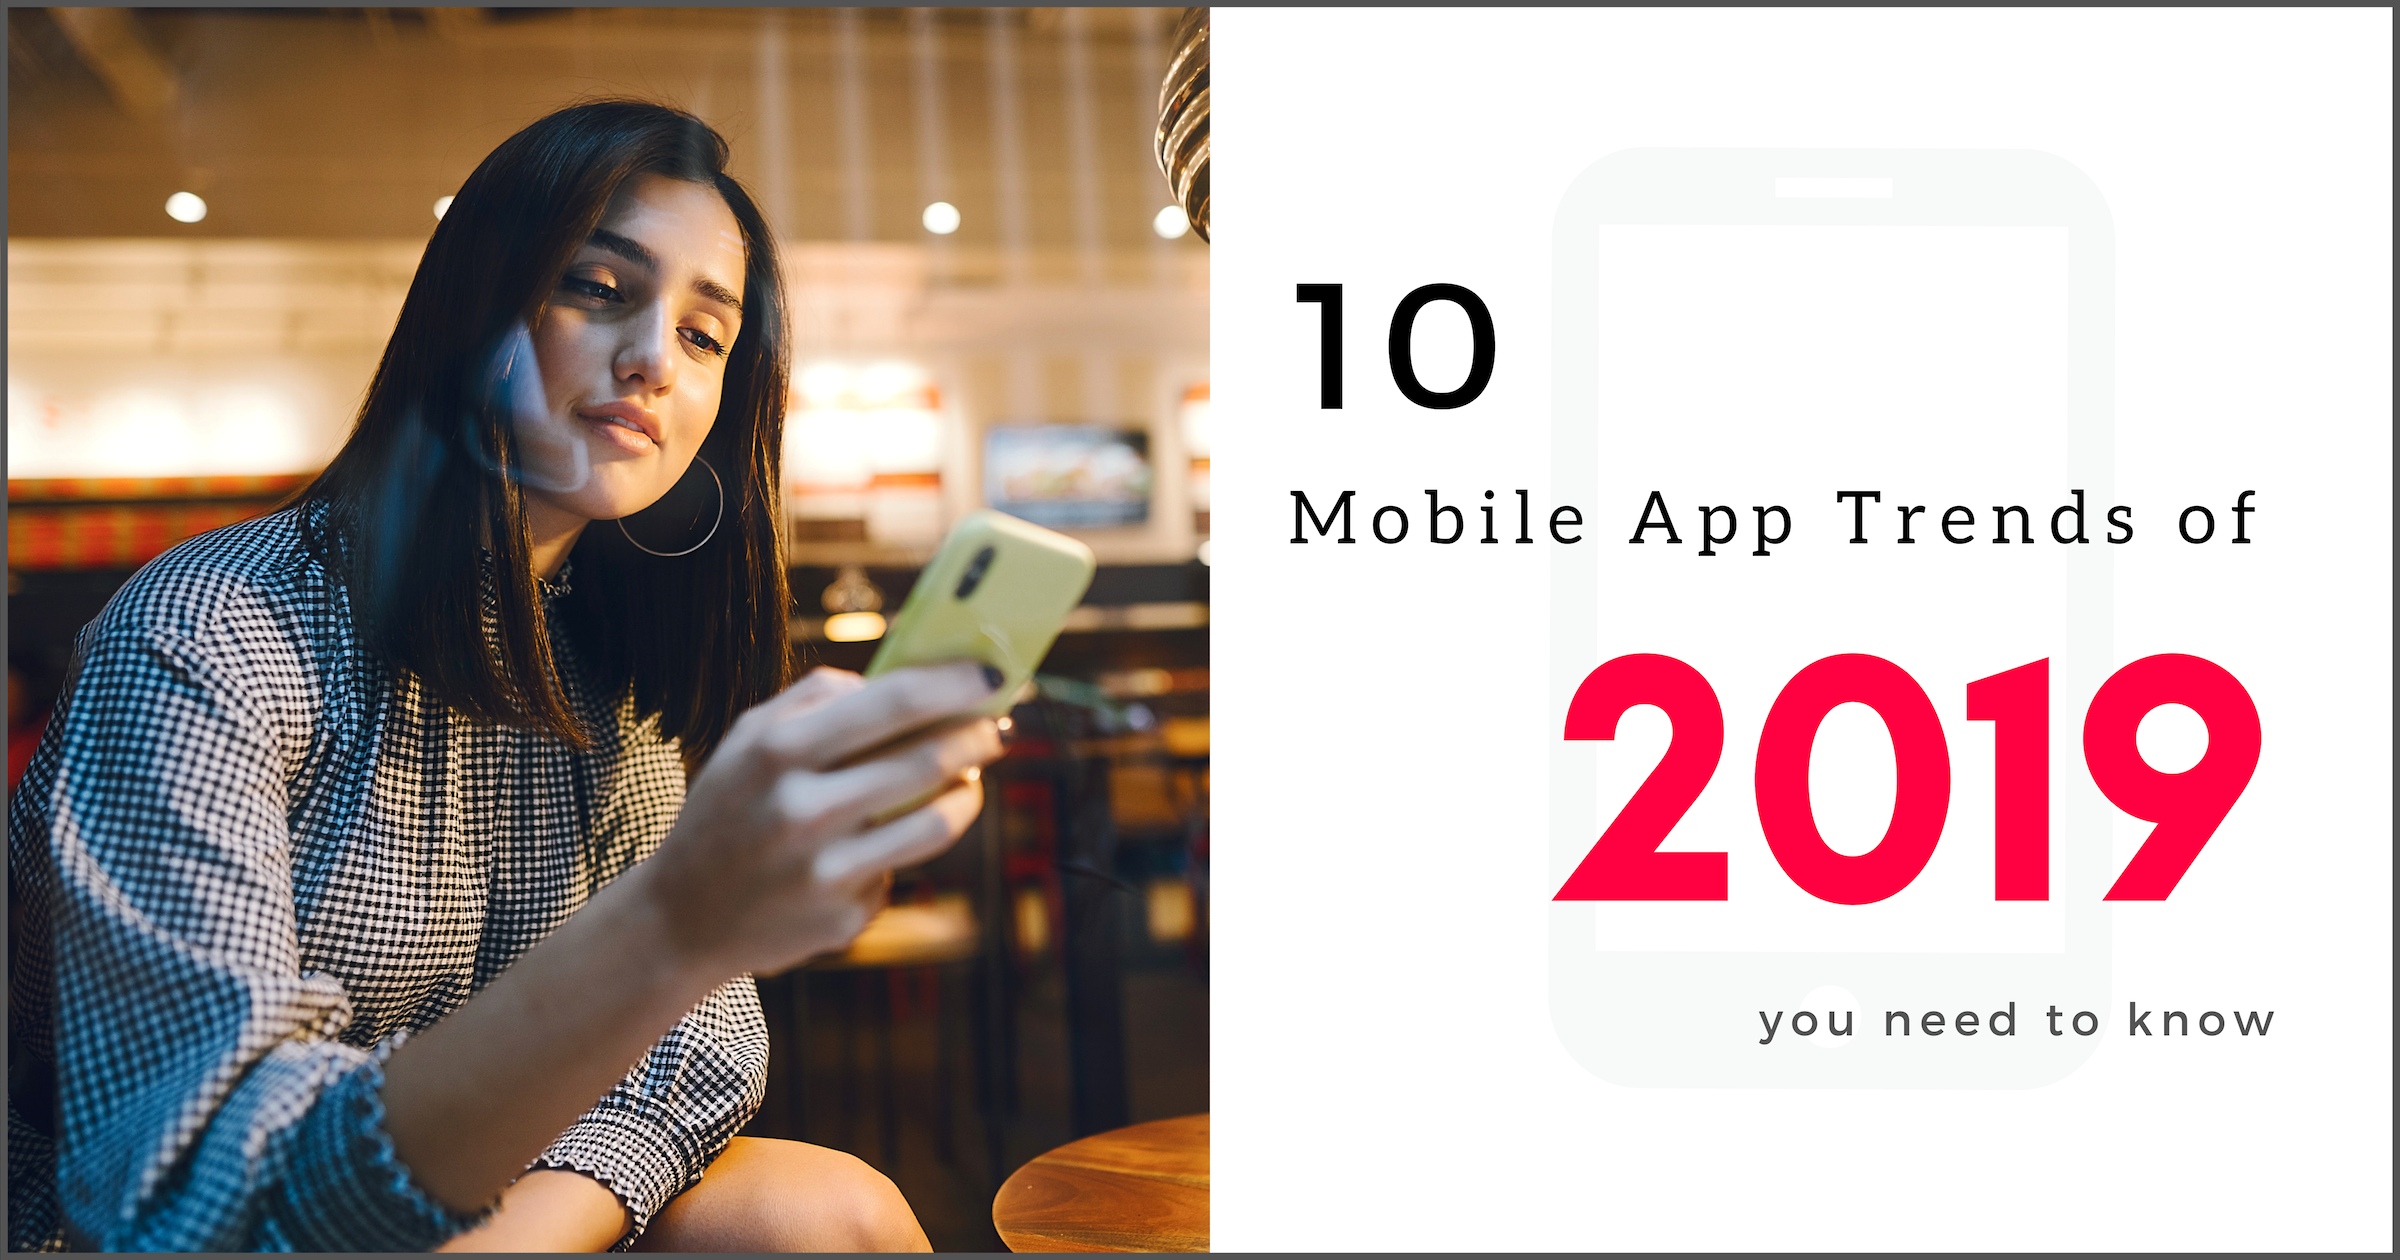 10 Mobile App Trends You Need to Know for 2019